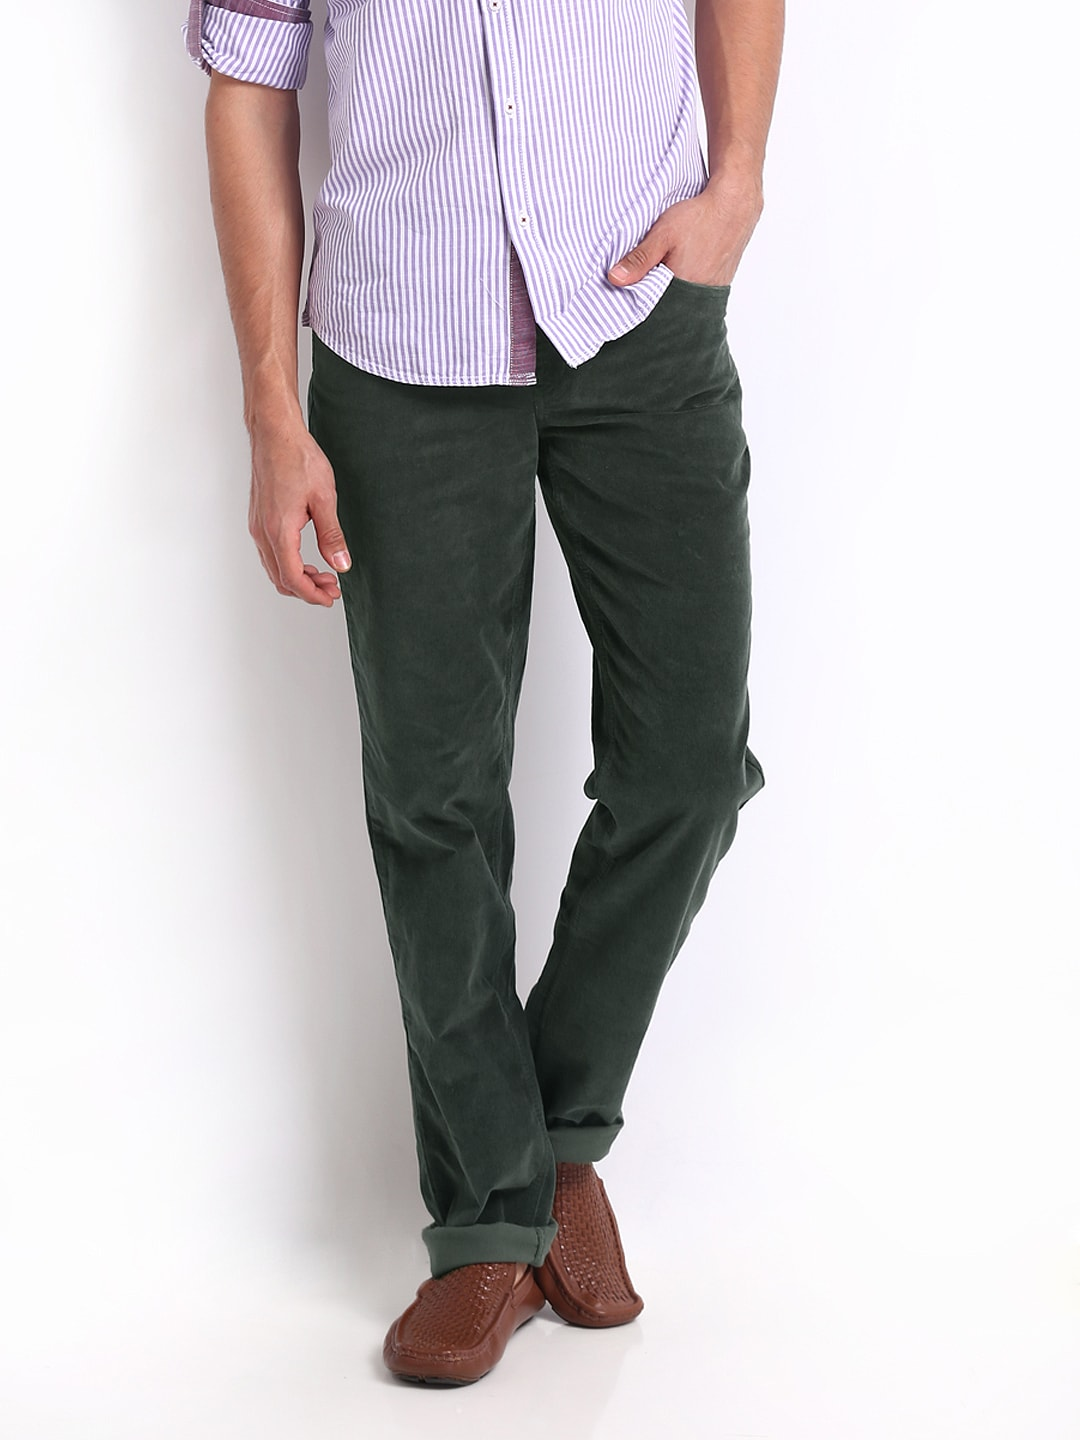 Find corduroy from a vast selection of Pants for Men. Get great deals on eBay!